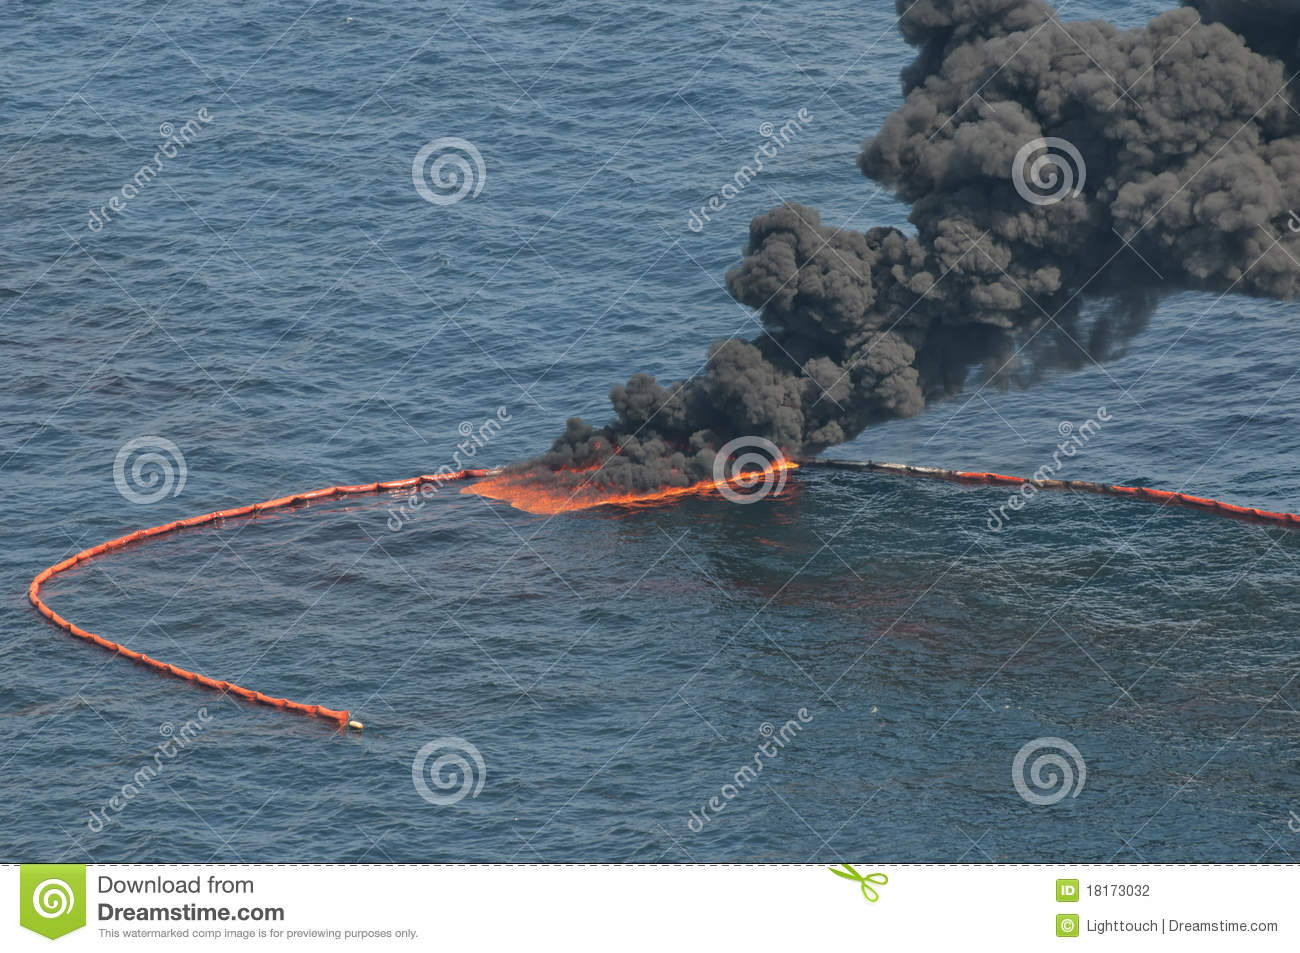 deepwater horizon oil spill On april 20, 2010, the deepwater horizon oil rig exploded off the gulf coast, killing 11 people and injuring 17 so began an 87-day oil spill that spewed 319 million barrels, or nearly 134 million gallons, into the gulf of mexico.